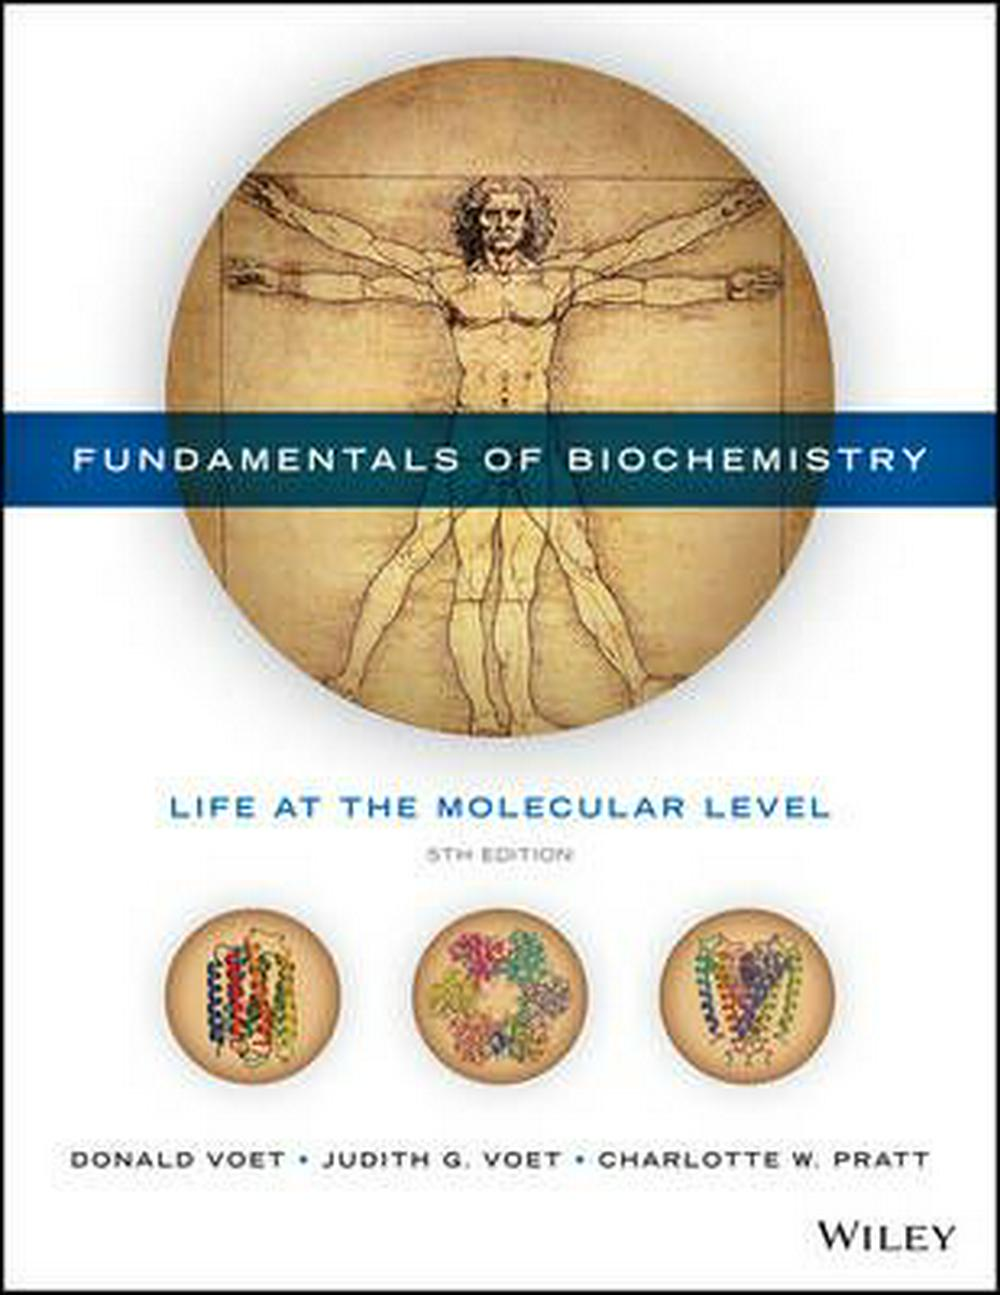 Fundamentals of Biochemistry: Life at the Molecular Level by Donald Voet, Judith G. Voet,Charlotte W. Pratt, ISBN: 9781118918401